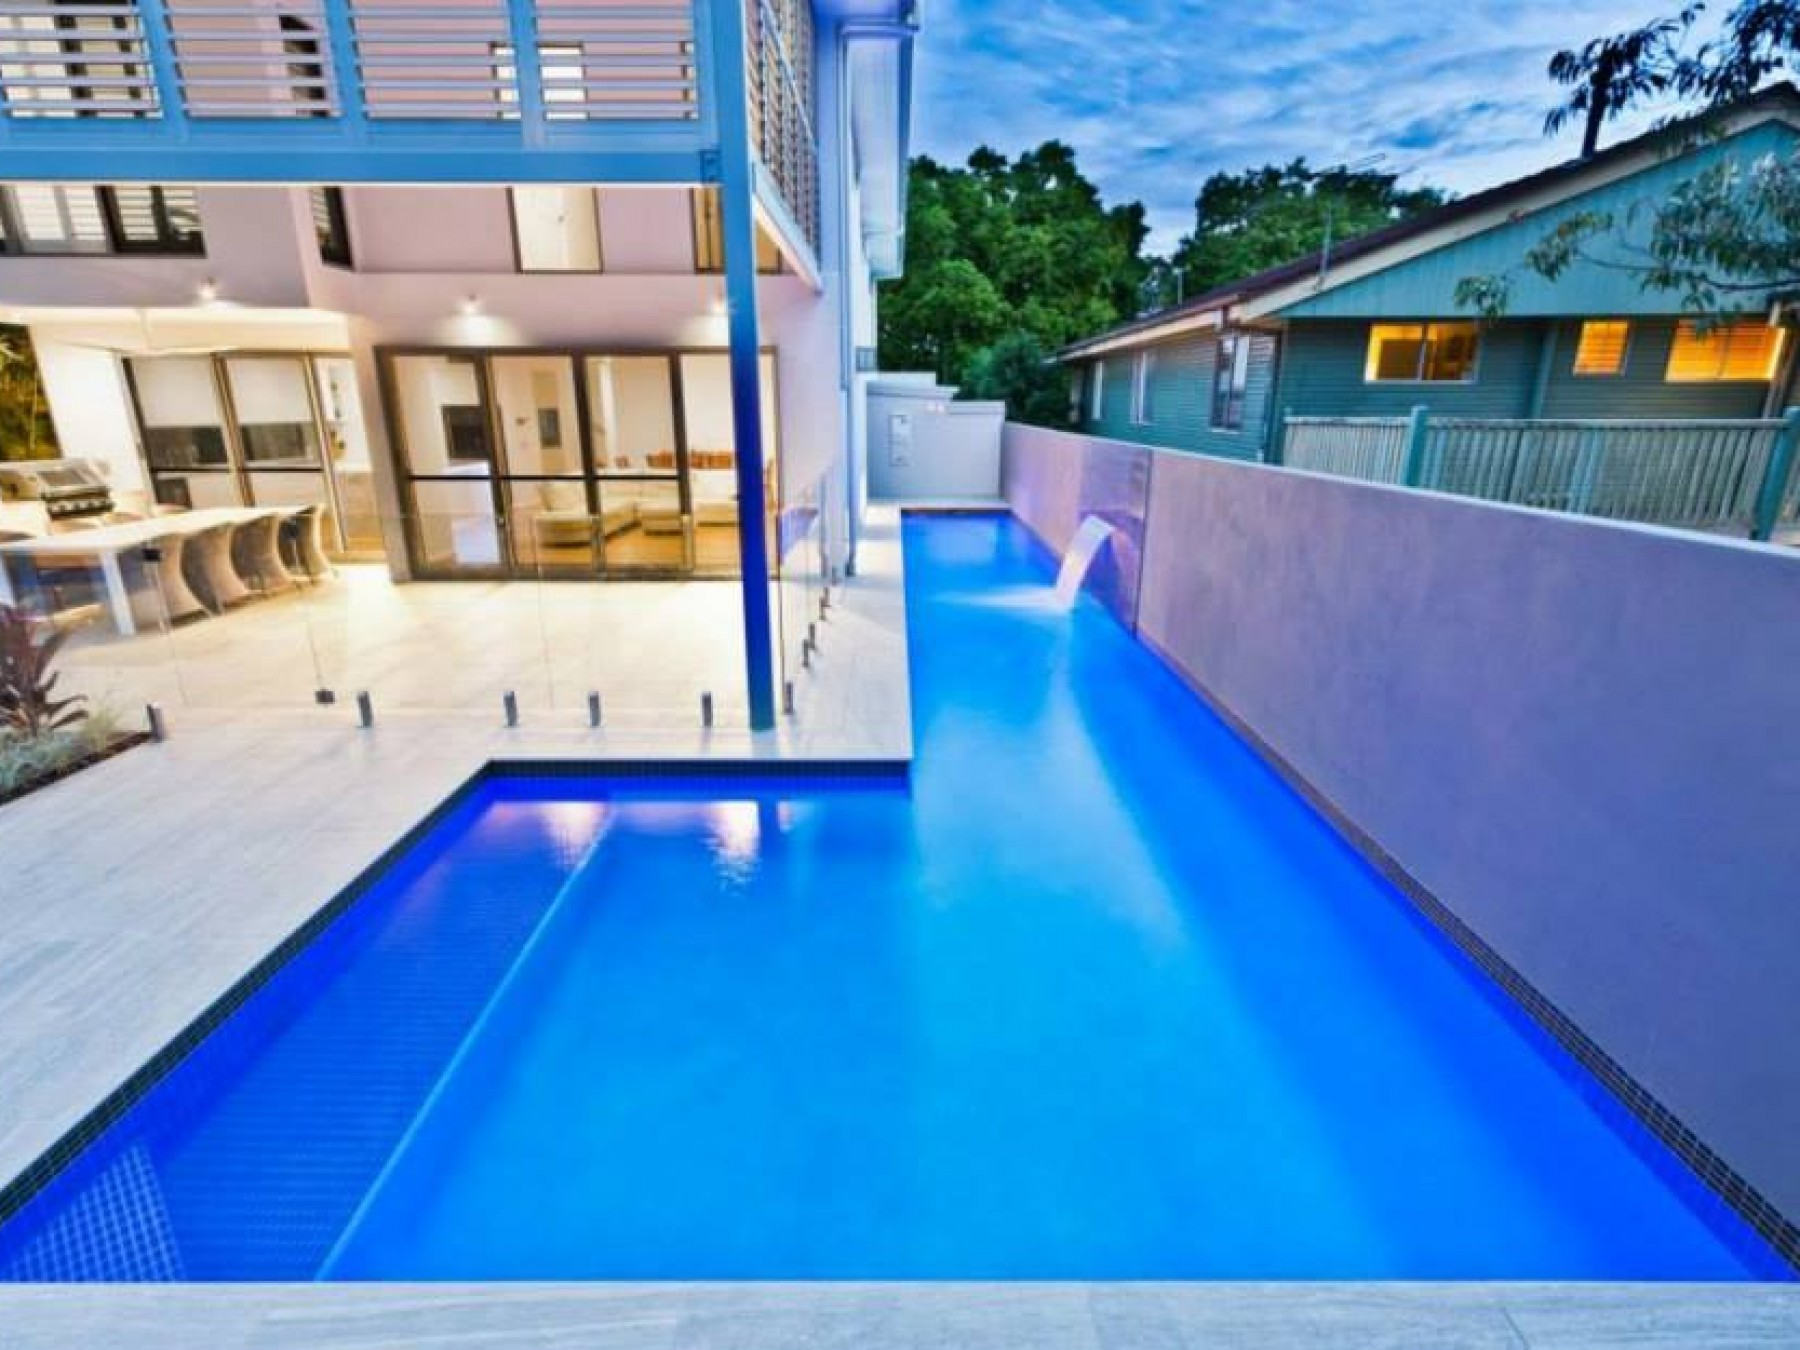 Selling or Leasing a pool in Paddington